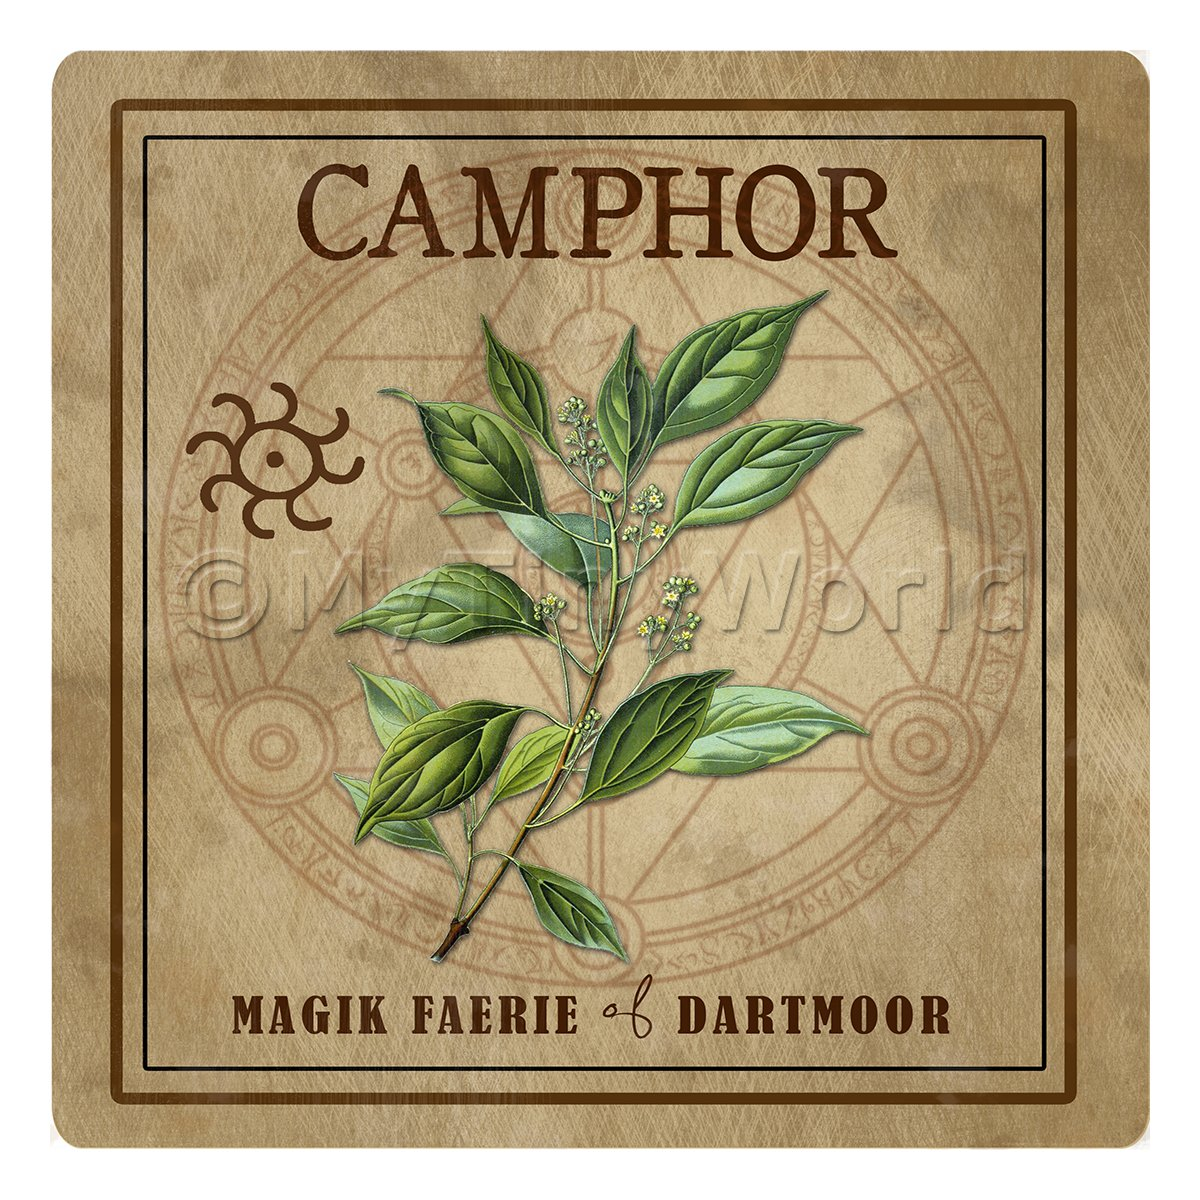 Dolls House Herbalist/Apothecary Square Camphor Herb Label